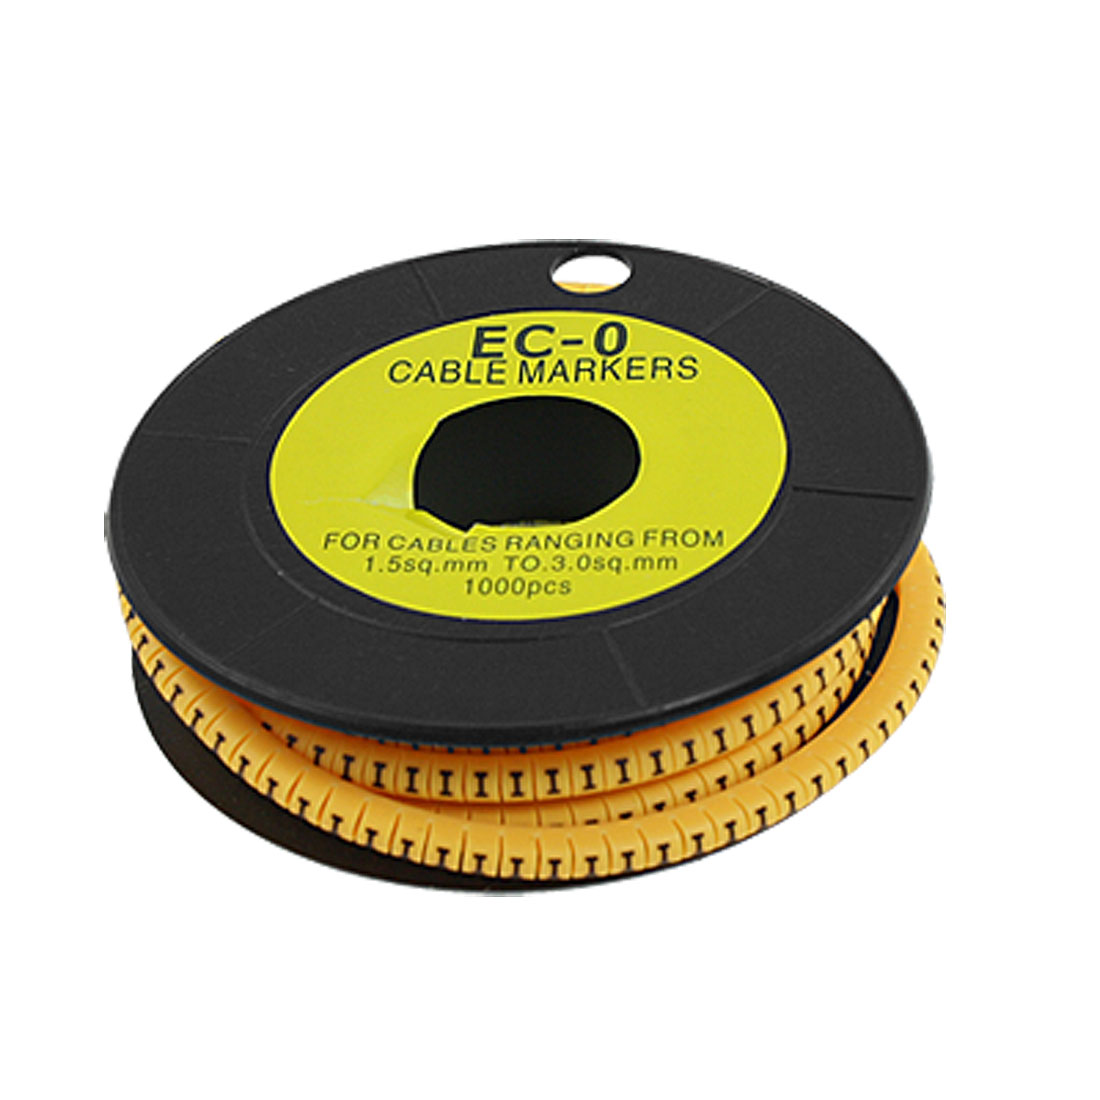 1000 Pcs in 1 3.5mm EC-0 Yellow F Type Flexible Cable Markers